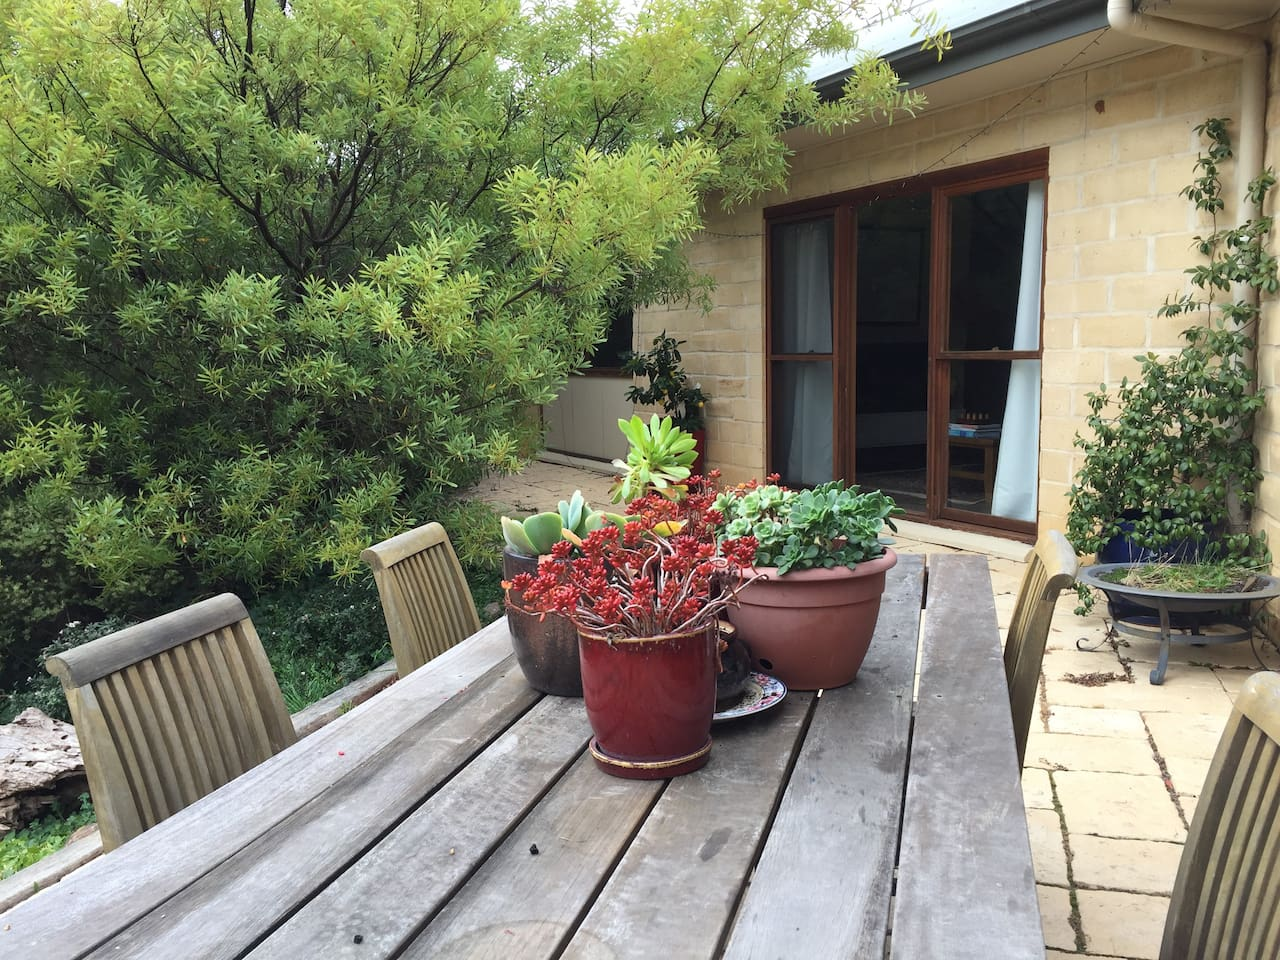 Your accommodation sits in a native garden setting.